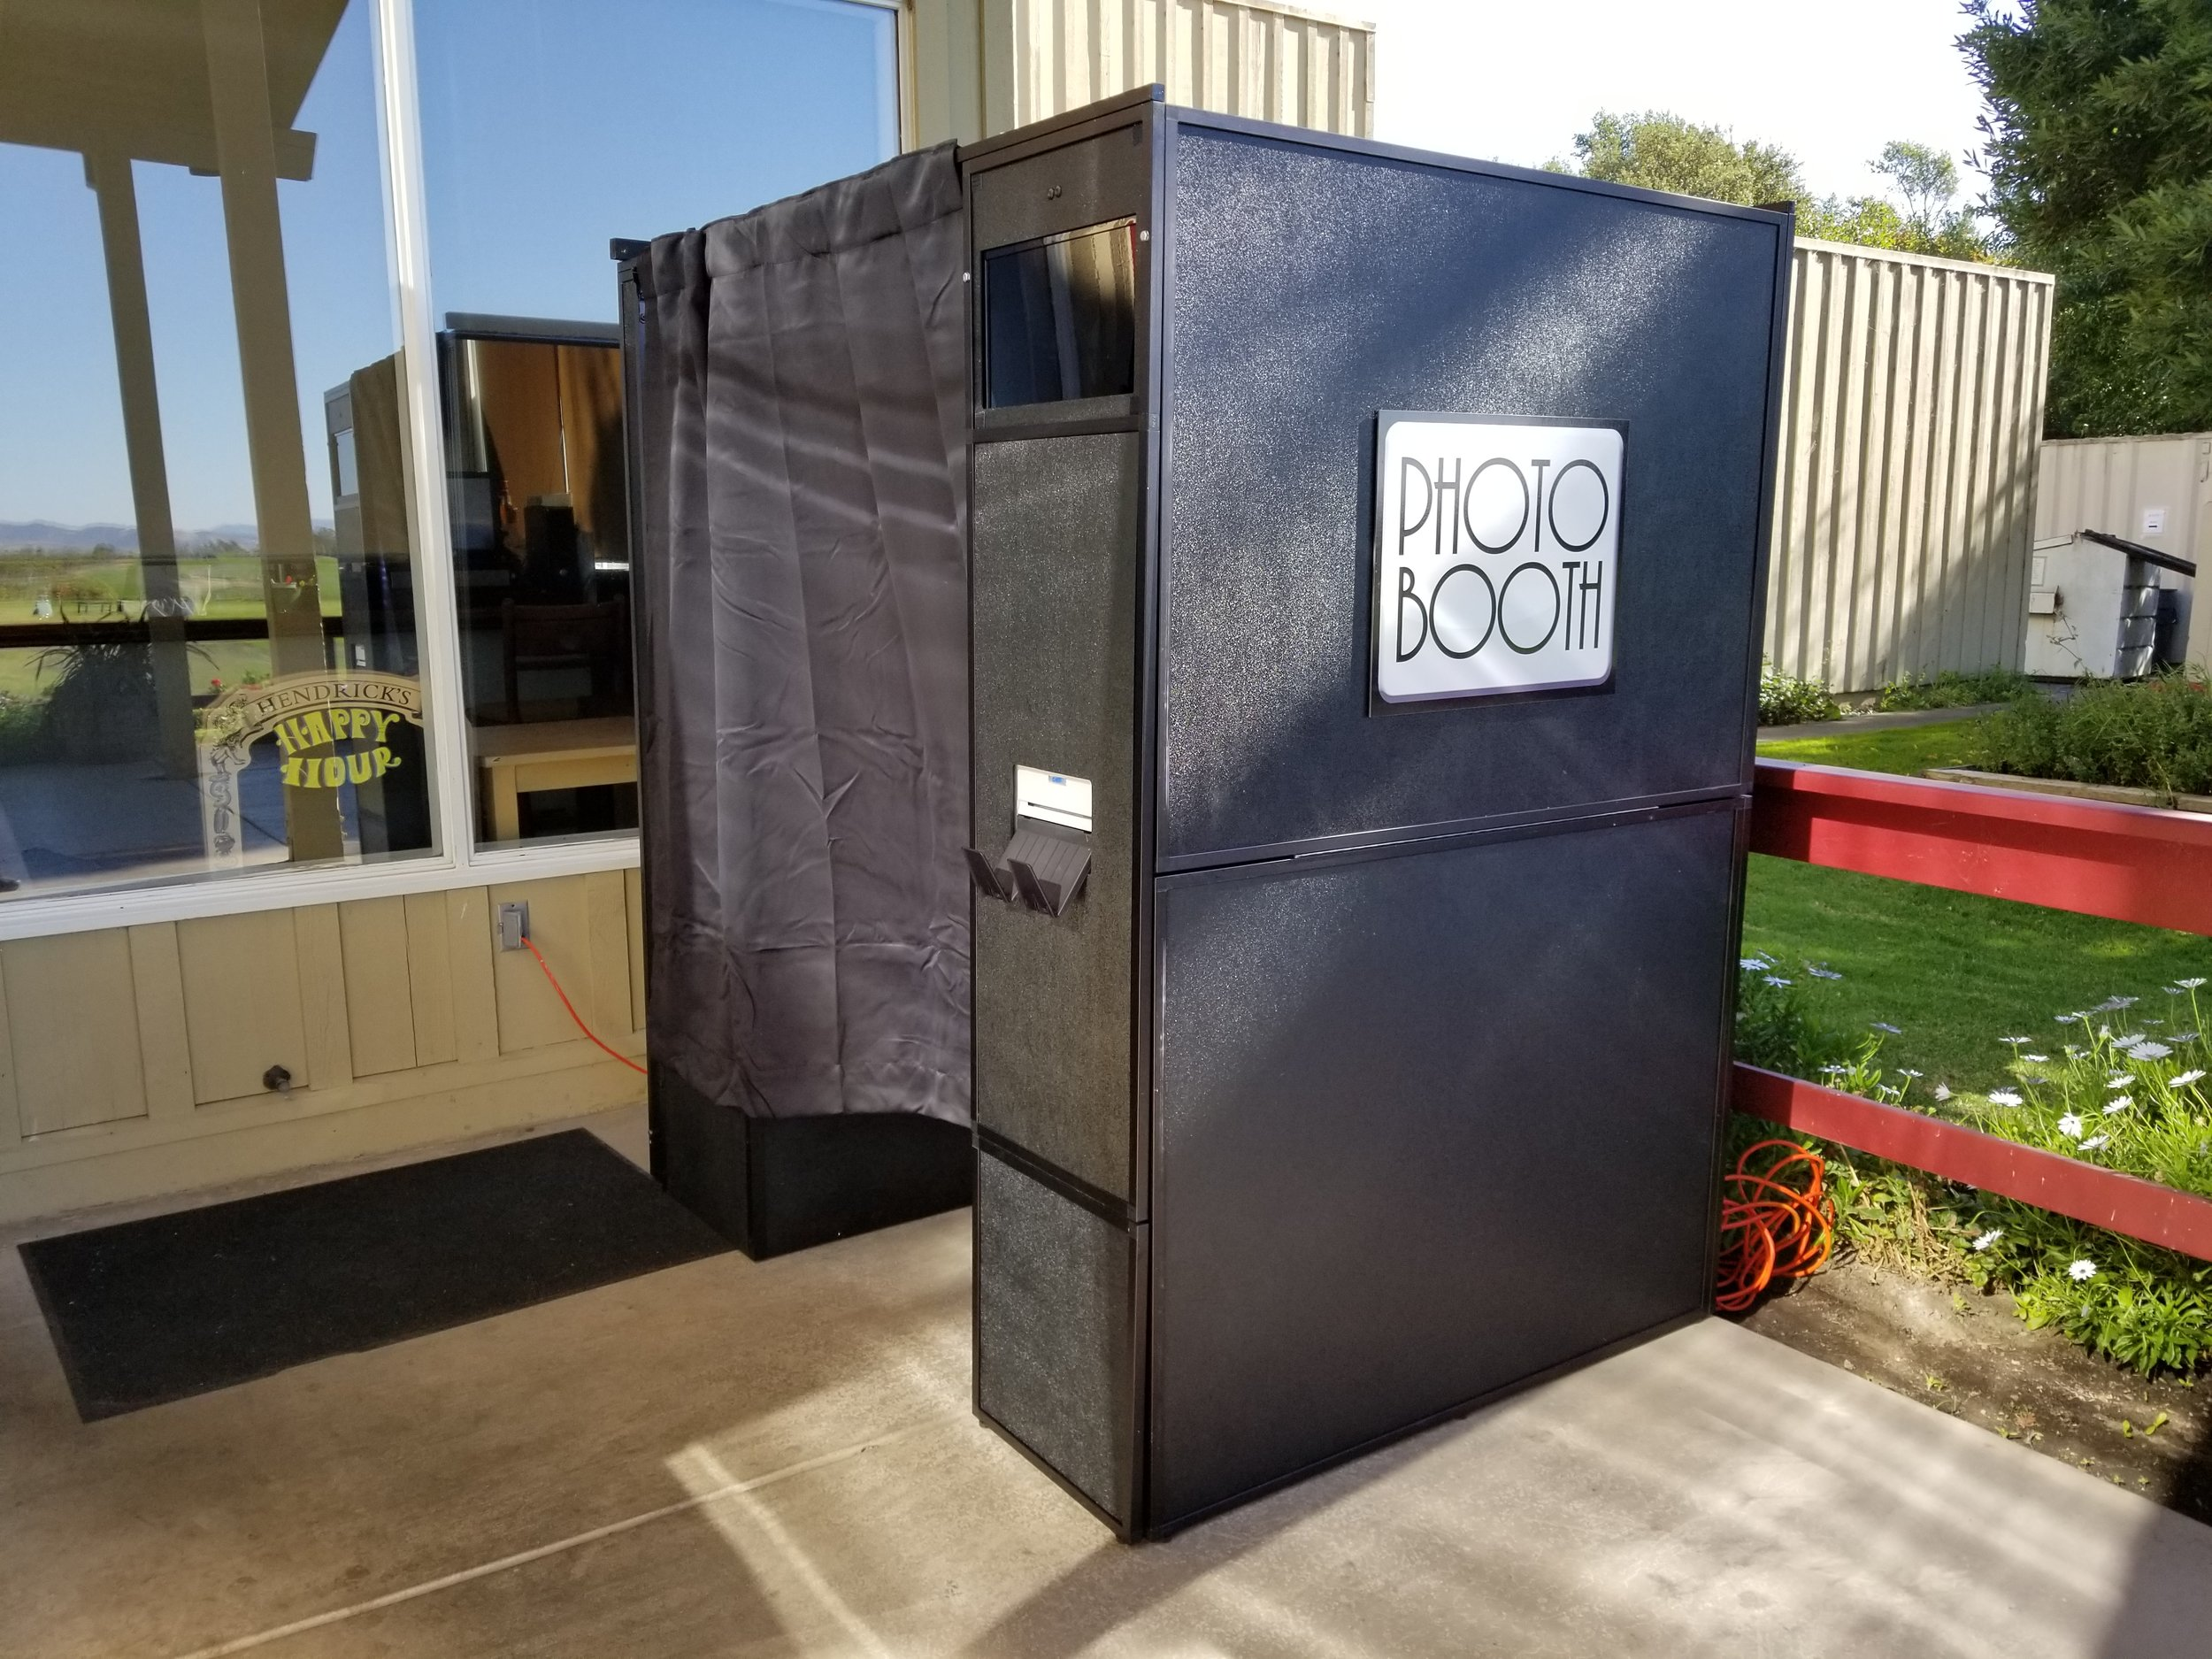 Enclosed Photo Booth - With or without side slideshow monitor this is a classic photo booth. Spacious in size, can 4-6 people at a time.Footprint: 6'x5'